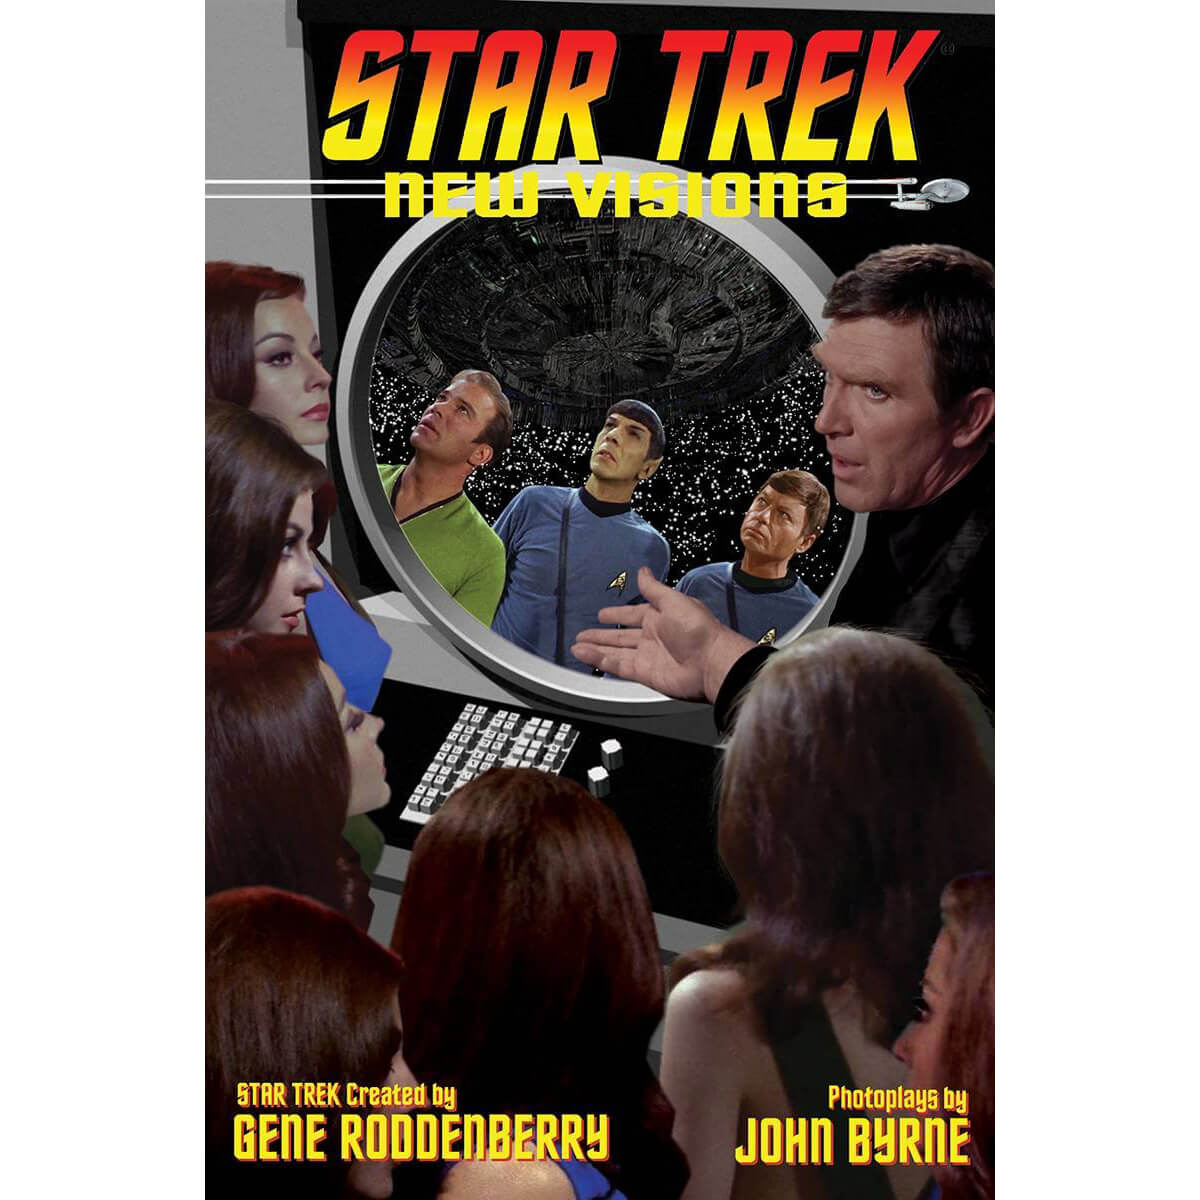 Star Trek: New Visions - Volume 3 Graphic Novel